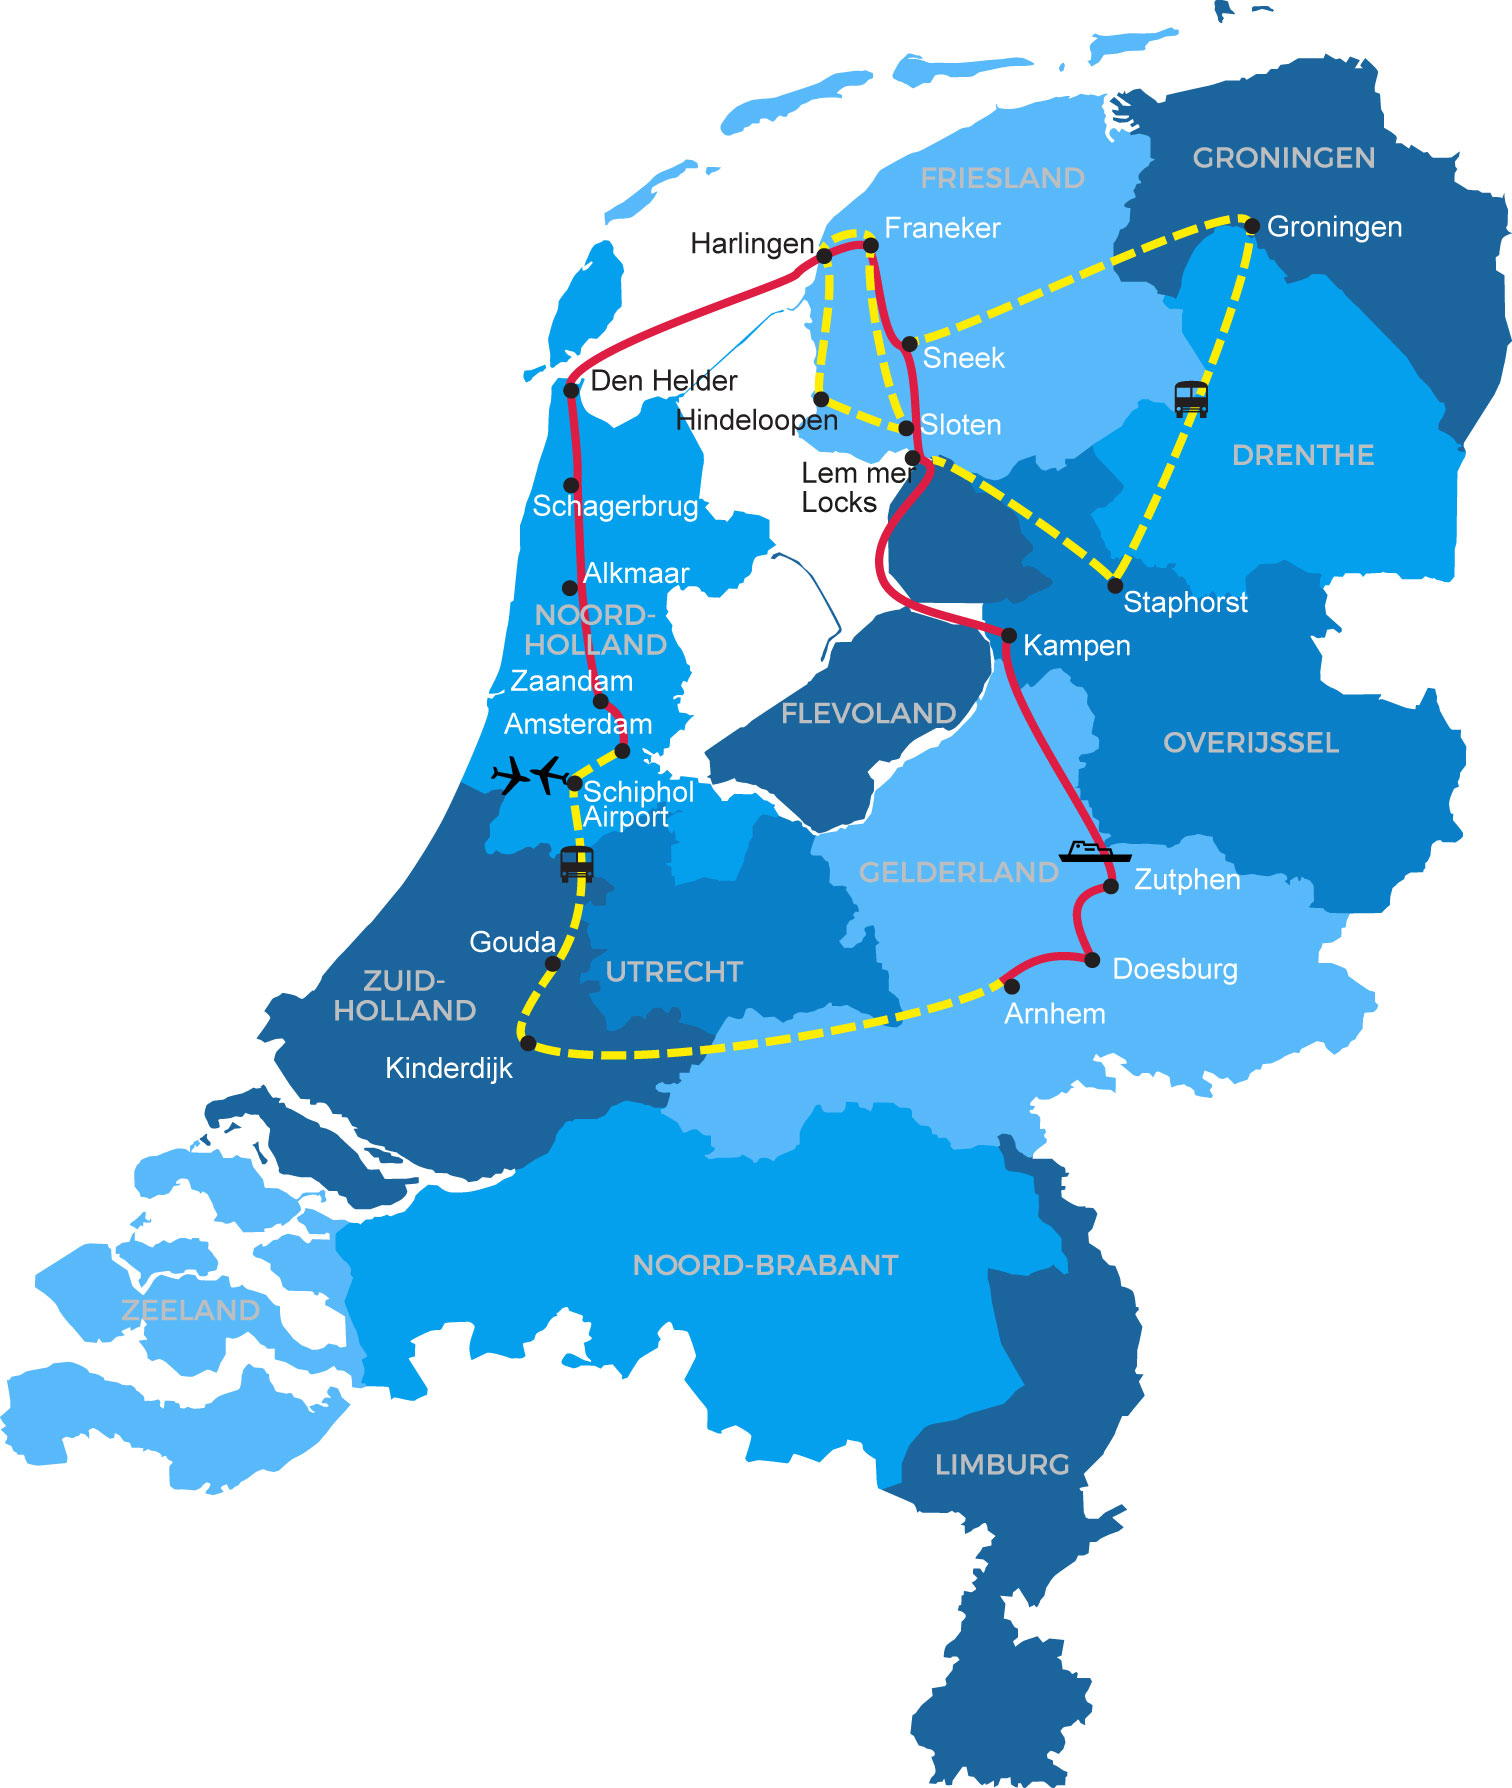 Netherlands Waterway Cruise Map</div>